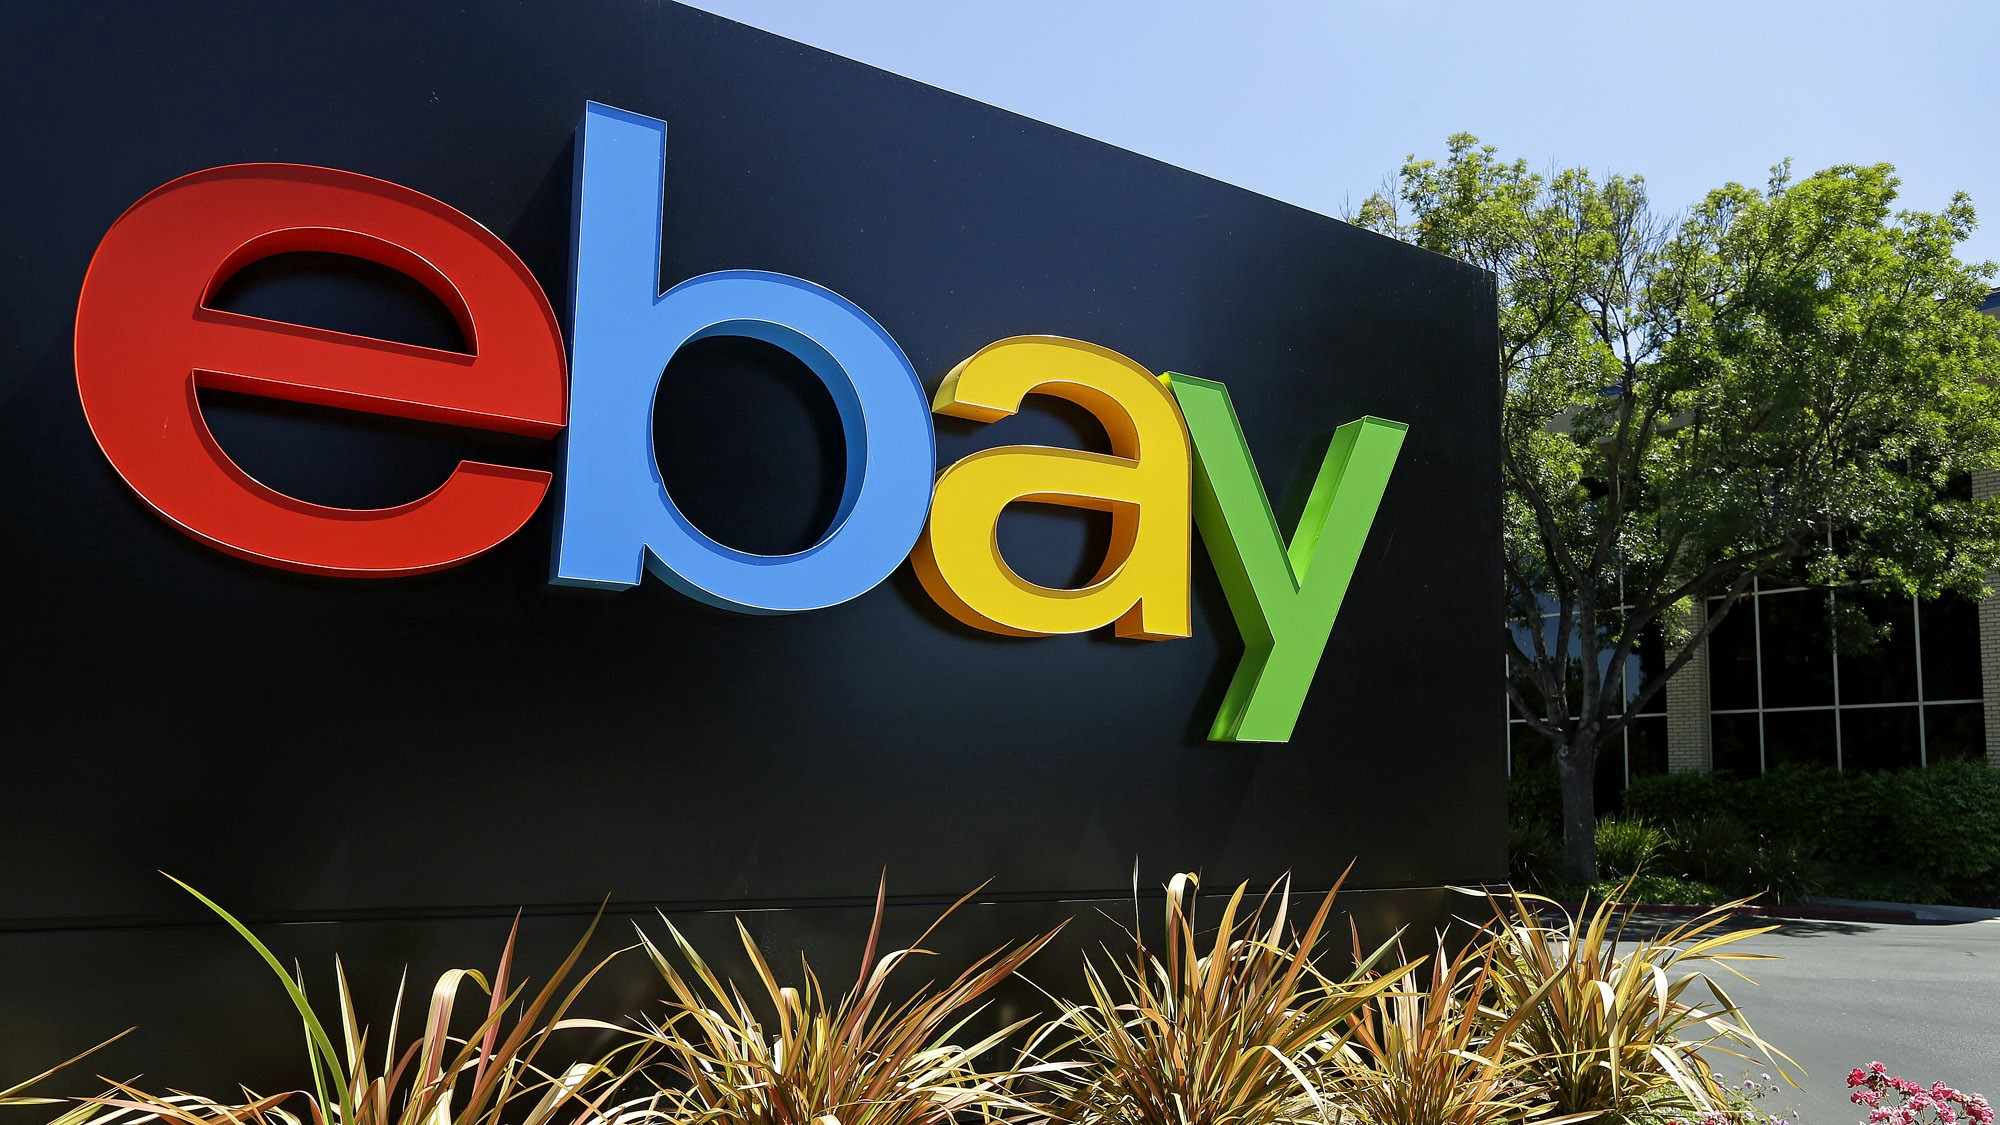 if youre looking to start a ebay business one good way to be successful with your ebay business is by creating good product listings for the items you plan